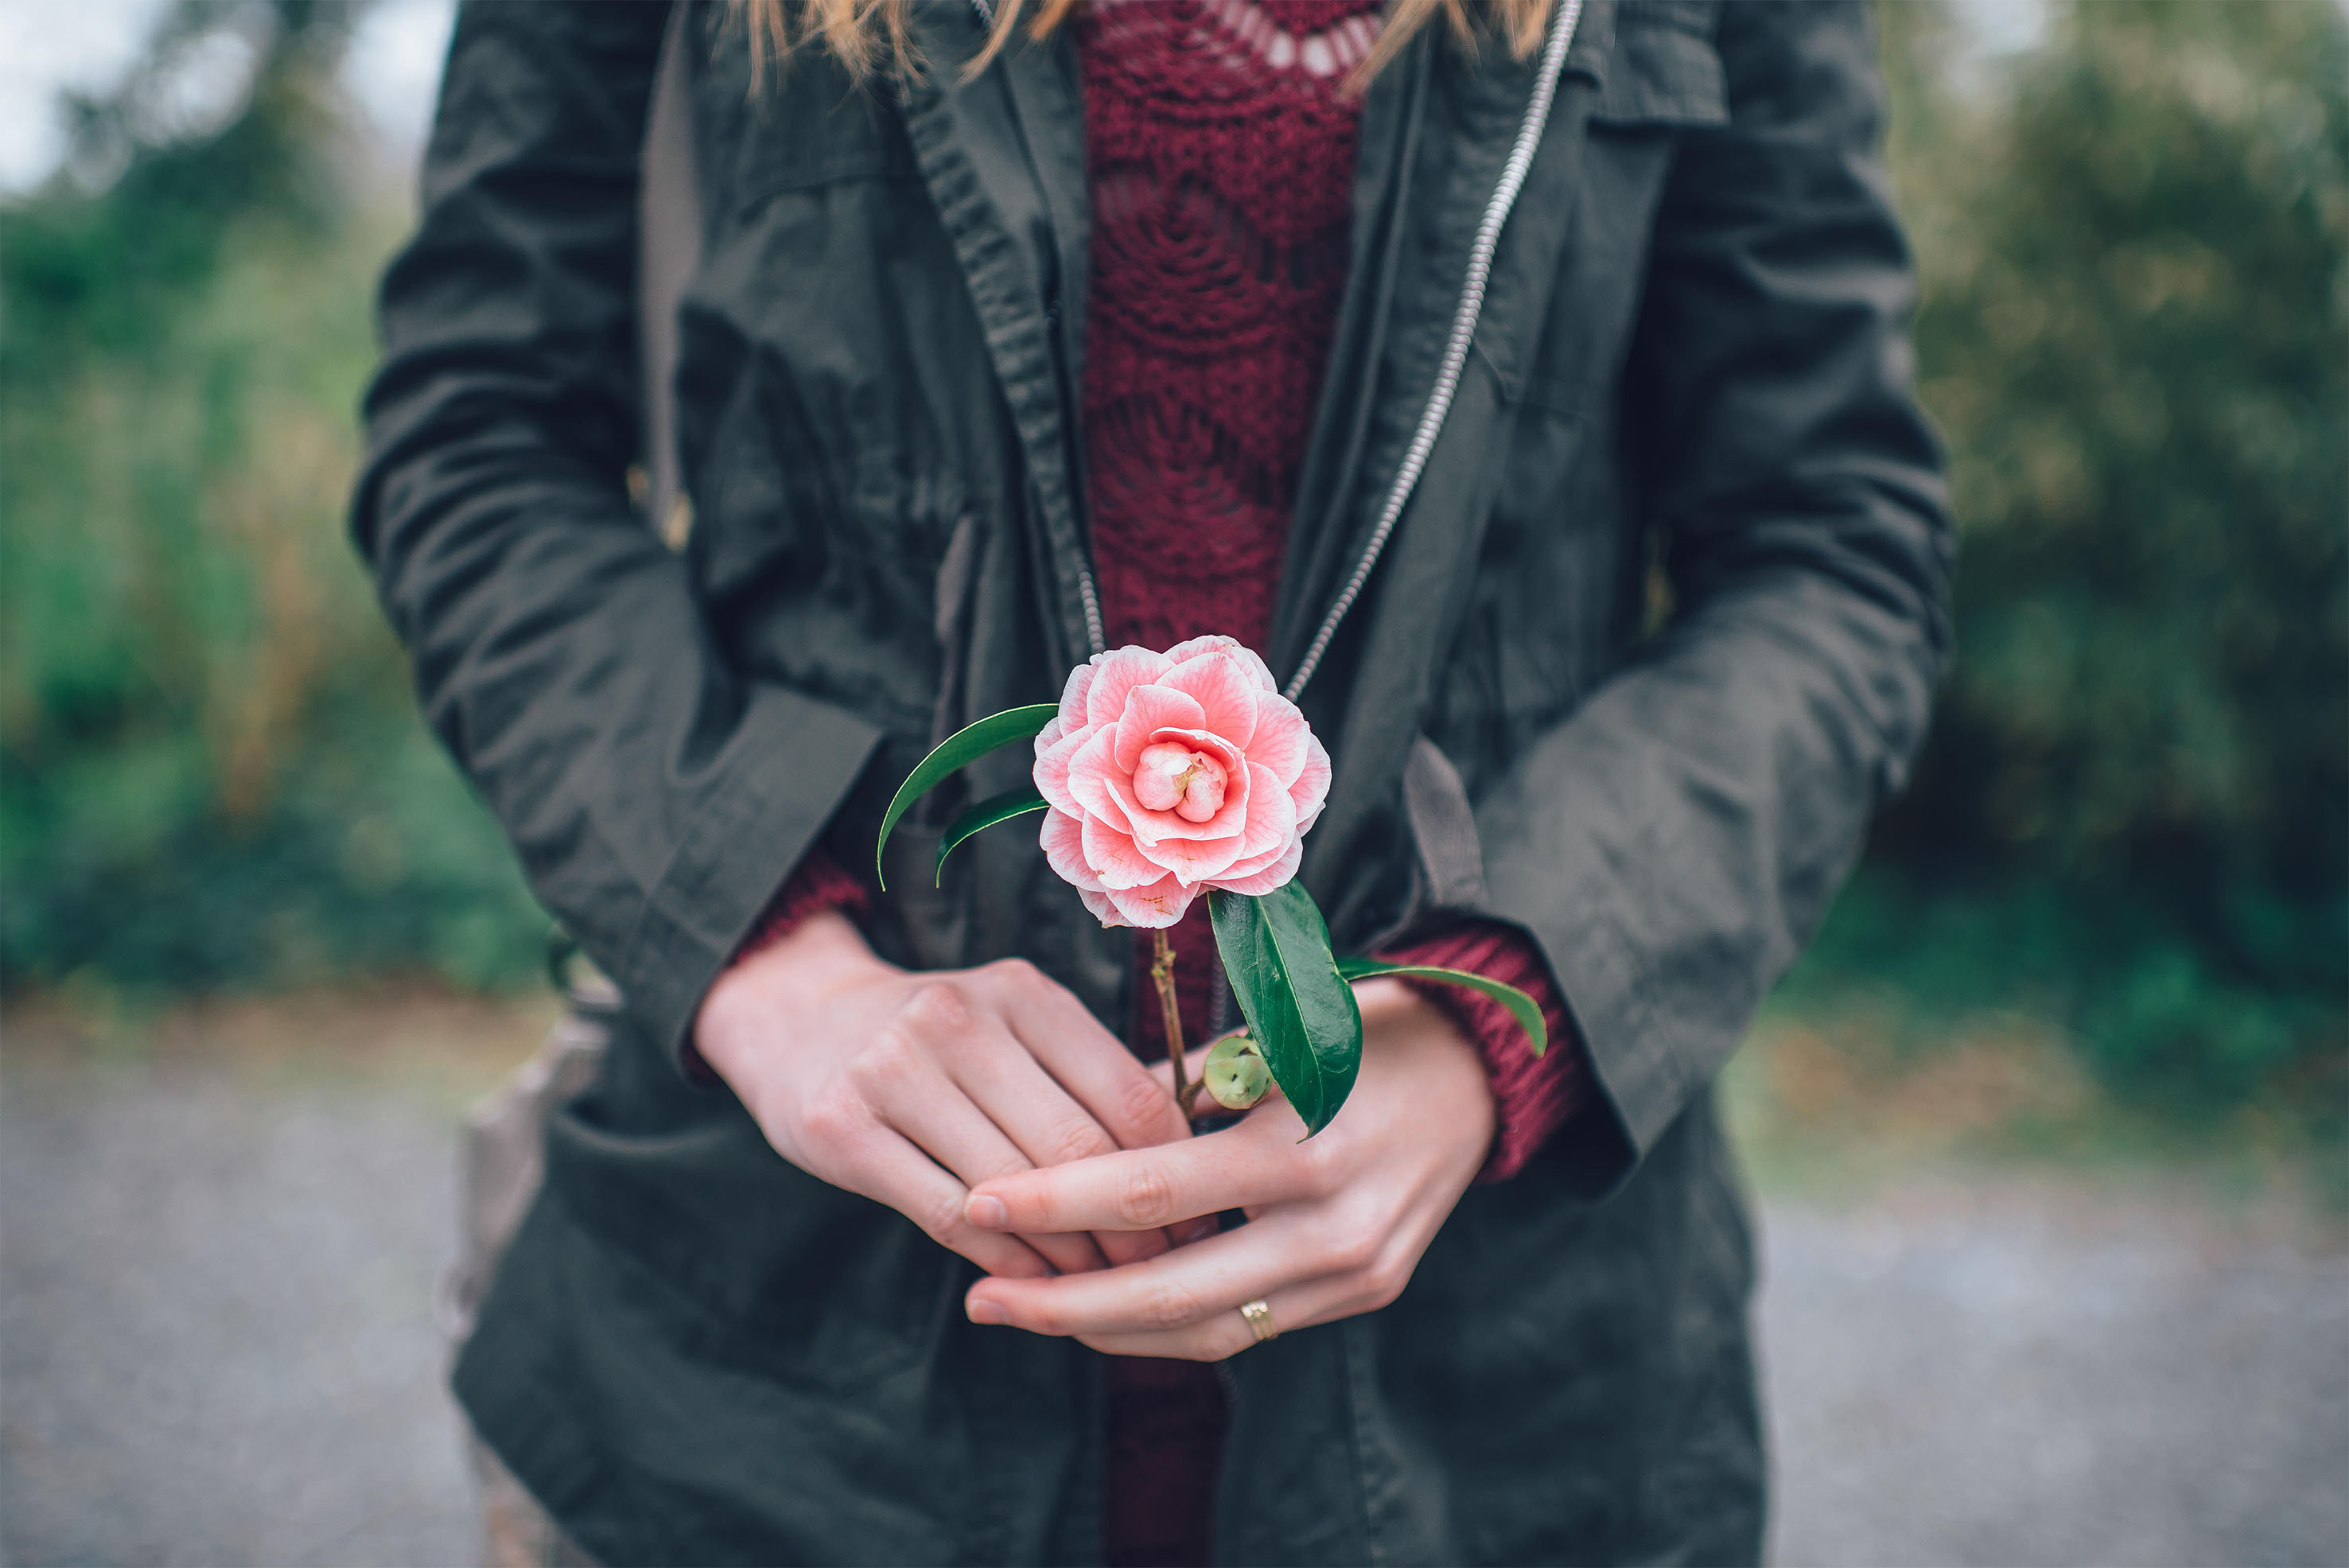 Woman holding a pink rose